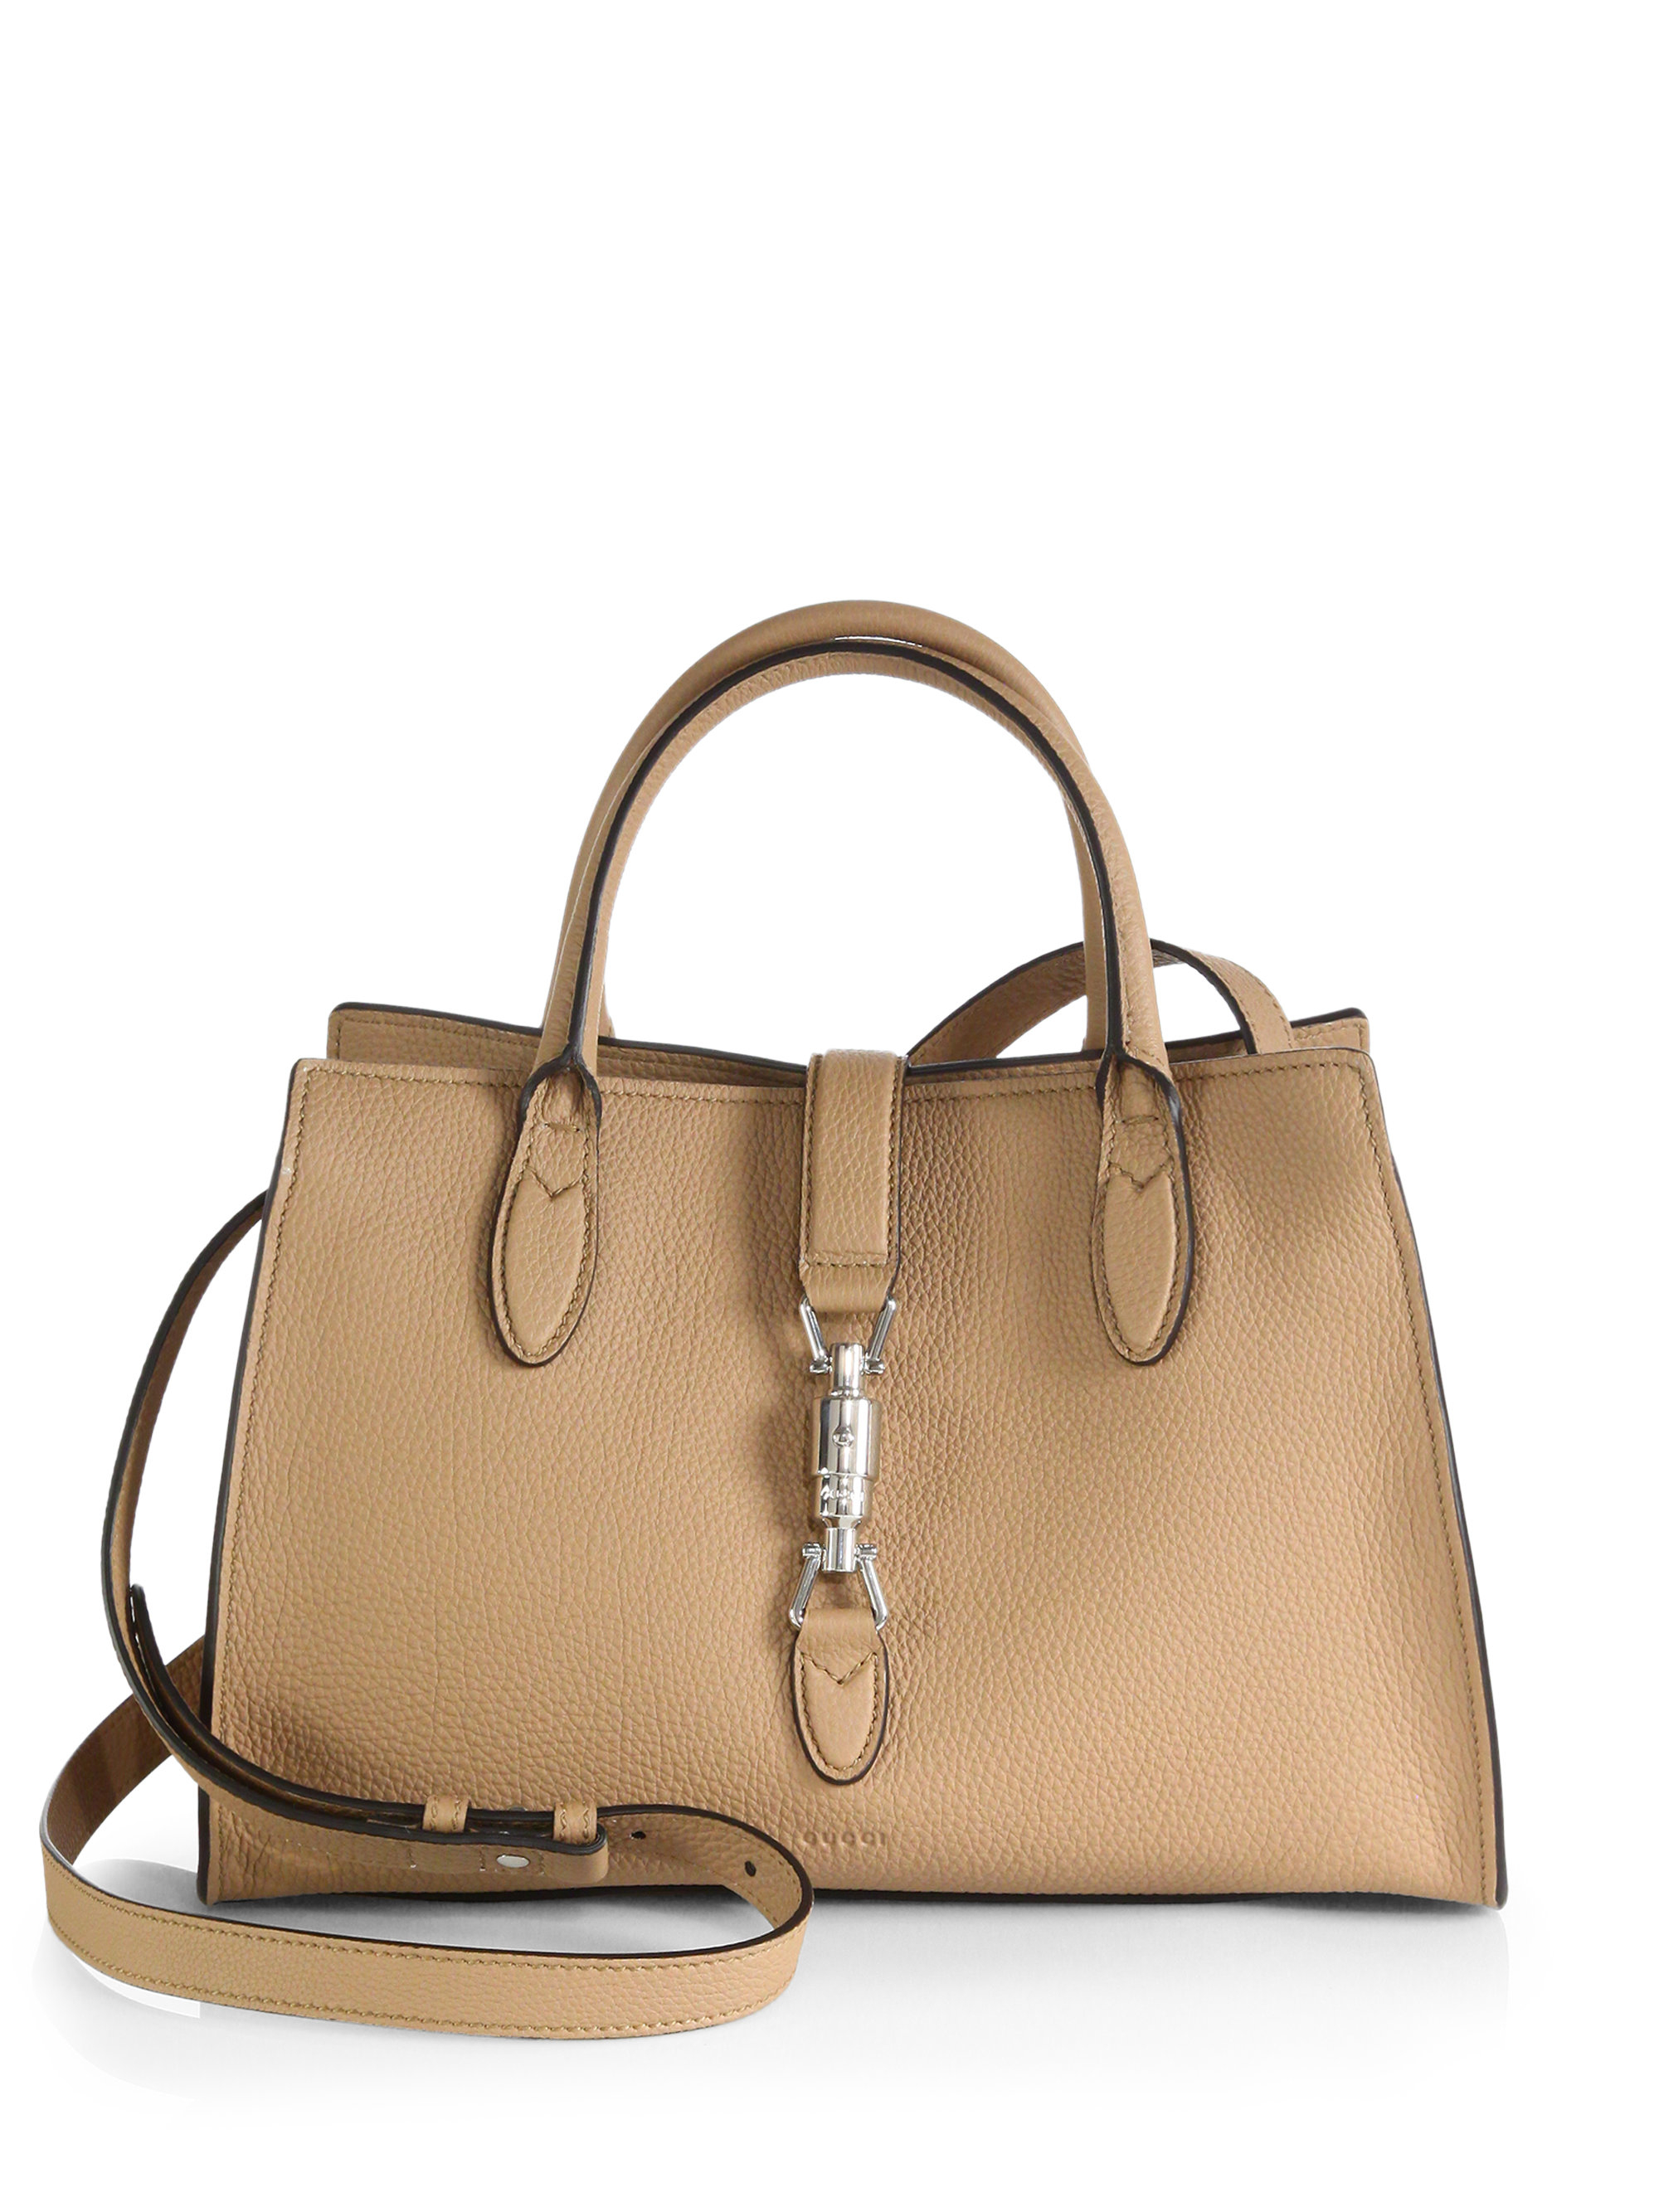 568dec0275c1 Gucci Jackie Soft Leather Top Handle Bag in Natural - Lyst